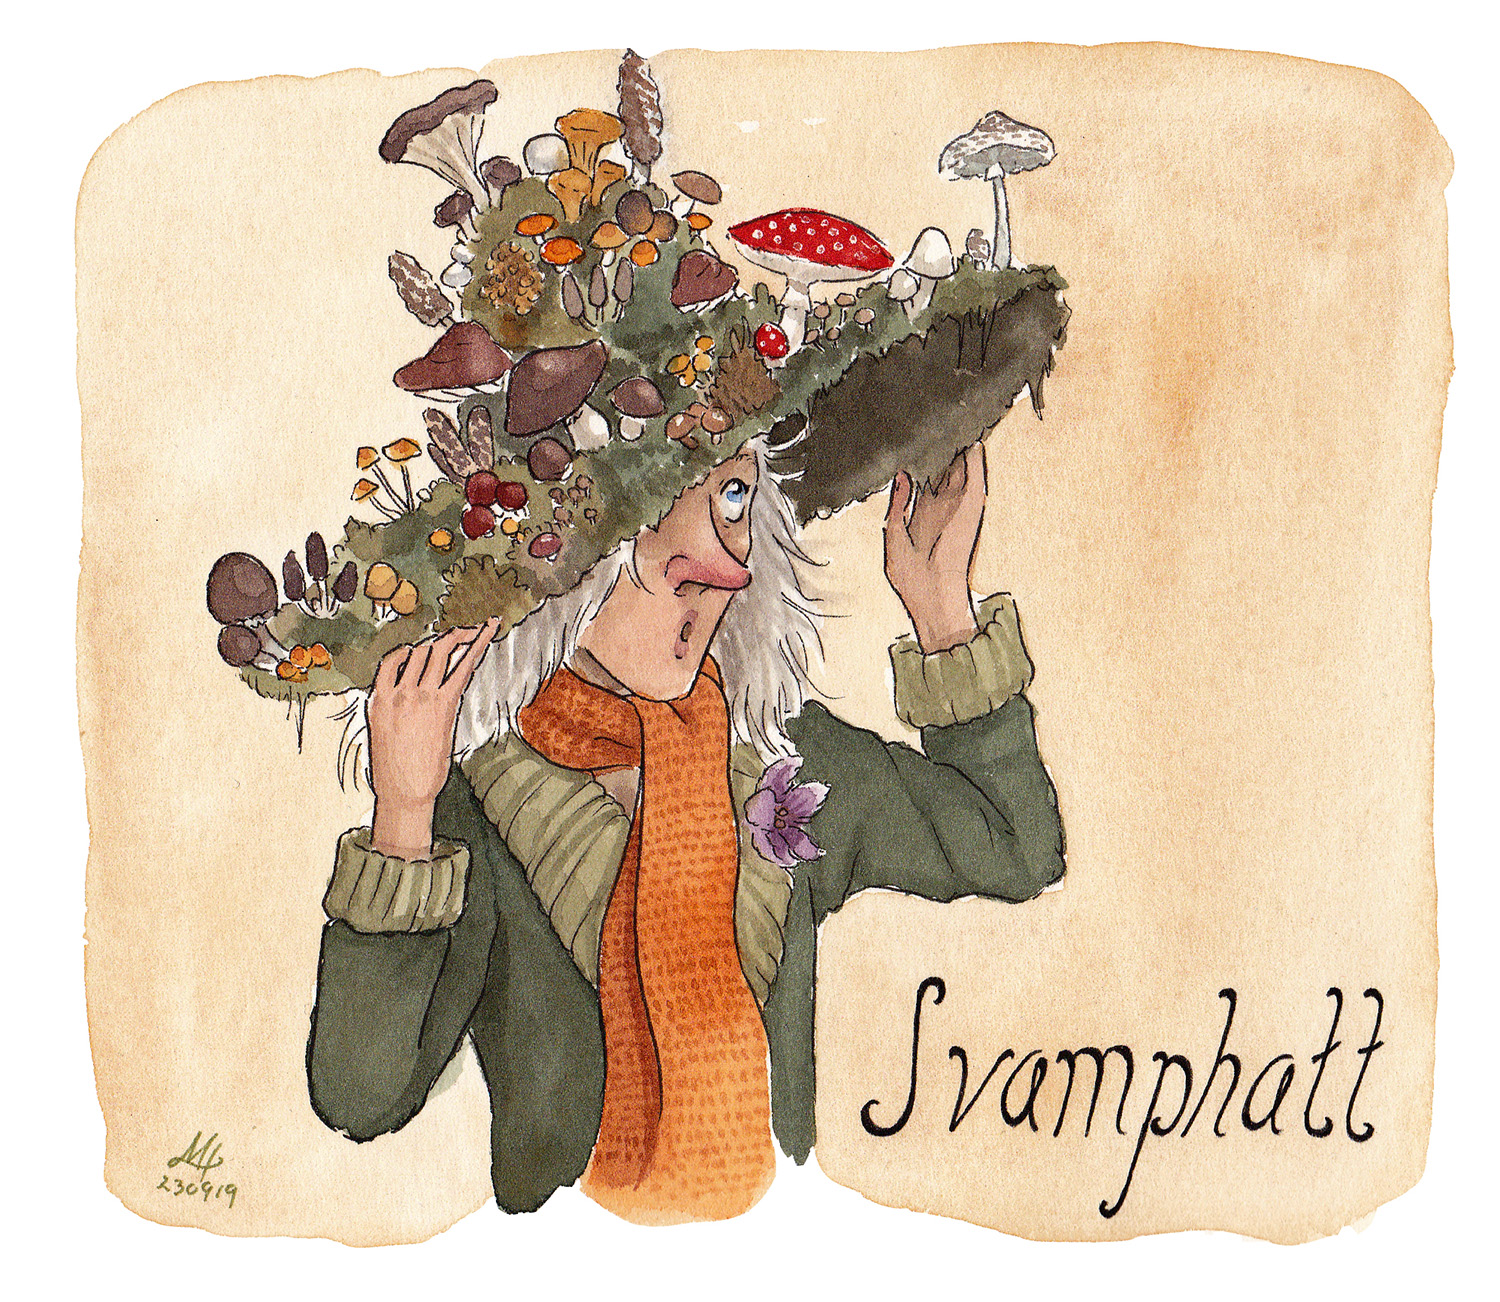 svamphatt illustration ordvits